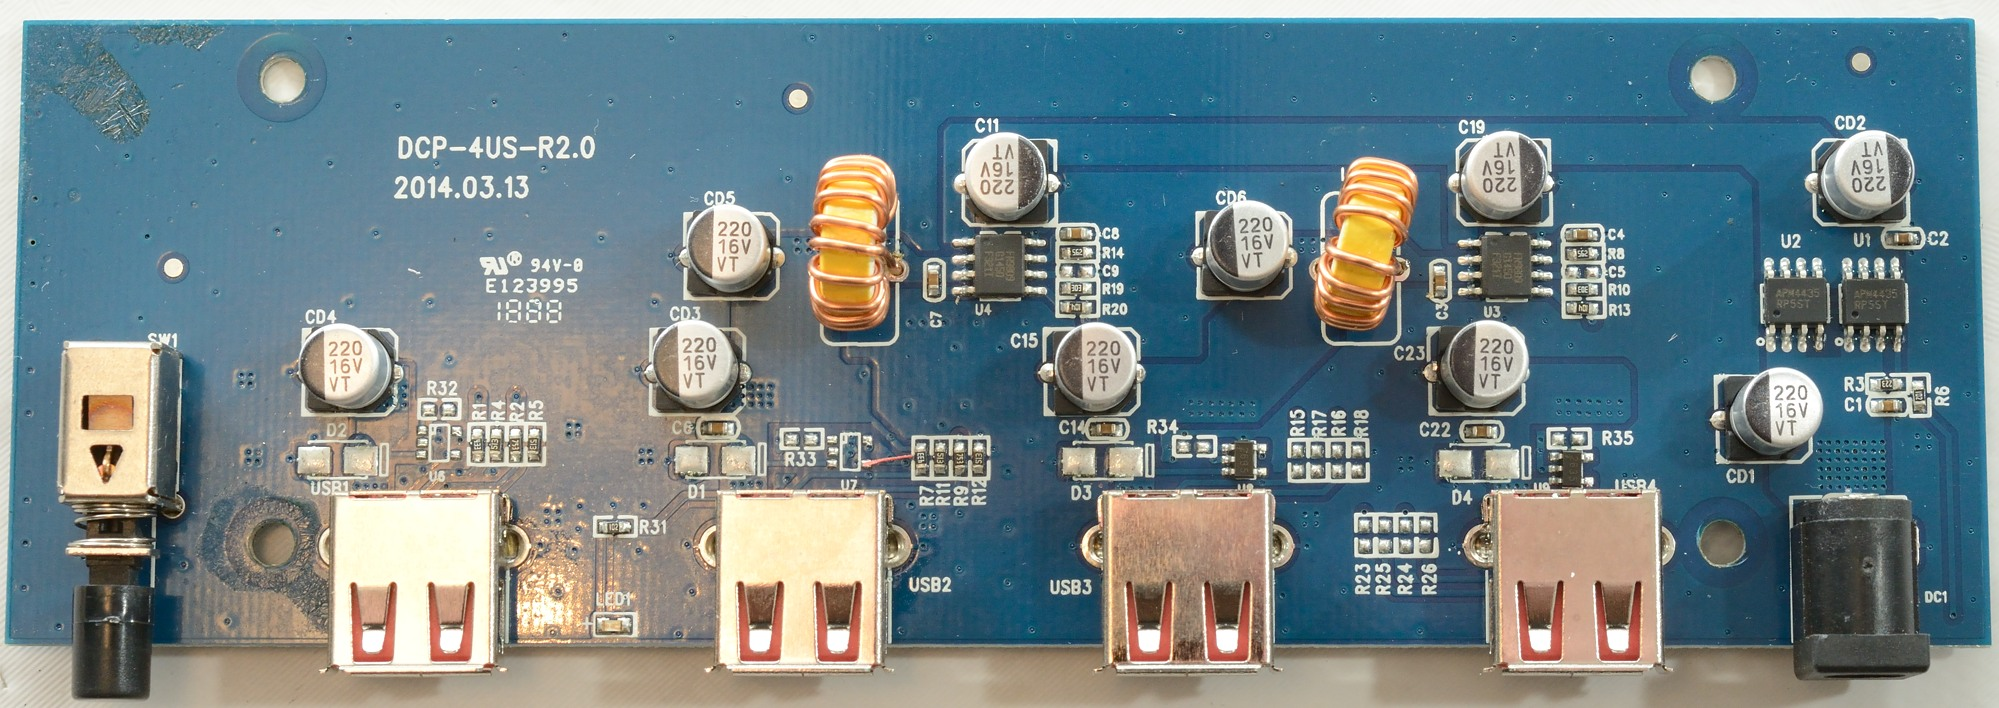 Test Of Orico 4 Port Usb Charging Station Dcp 4us Charger Circuit There Is Two Switchers On The Board U3 U4 That Converts 12v To 5v One Supplies 2a Output And Other 1a